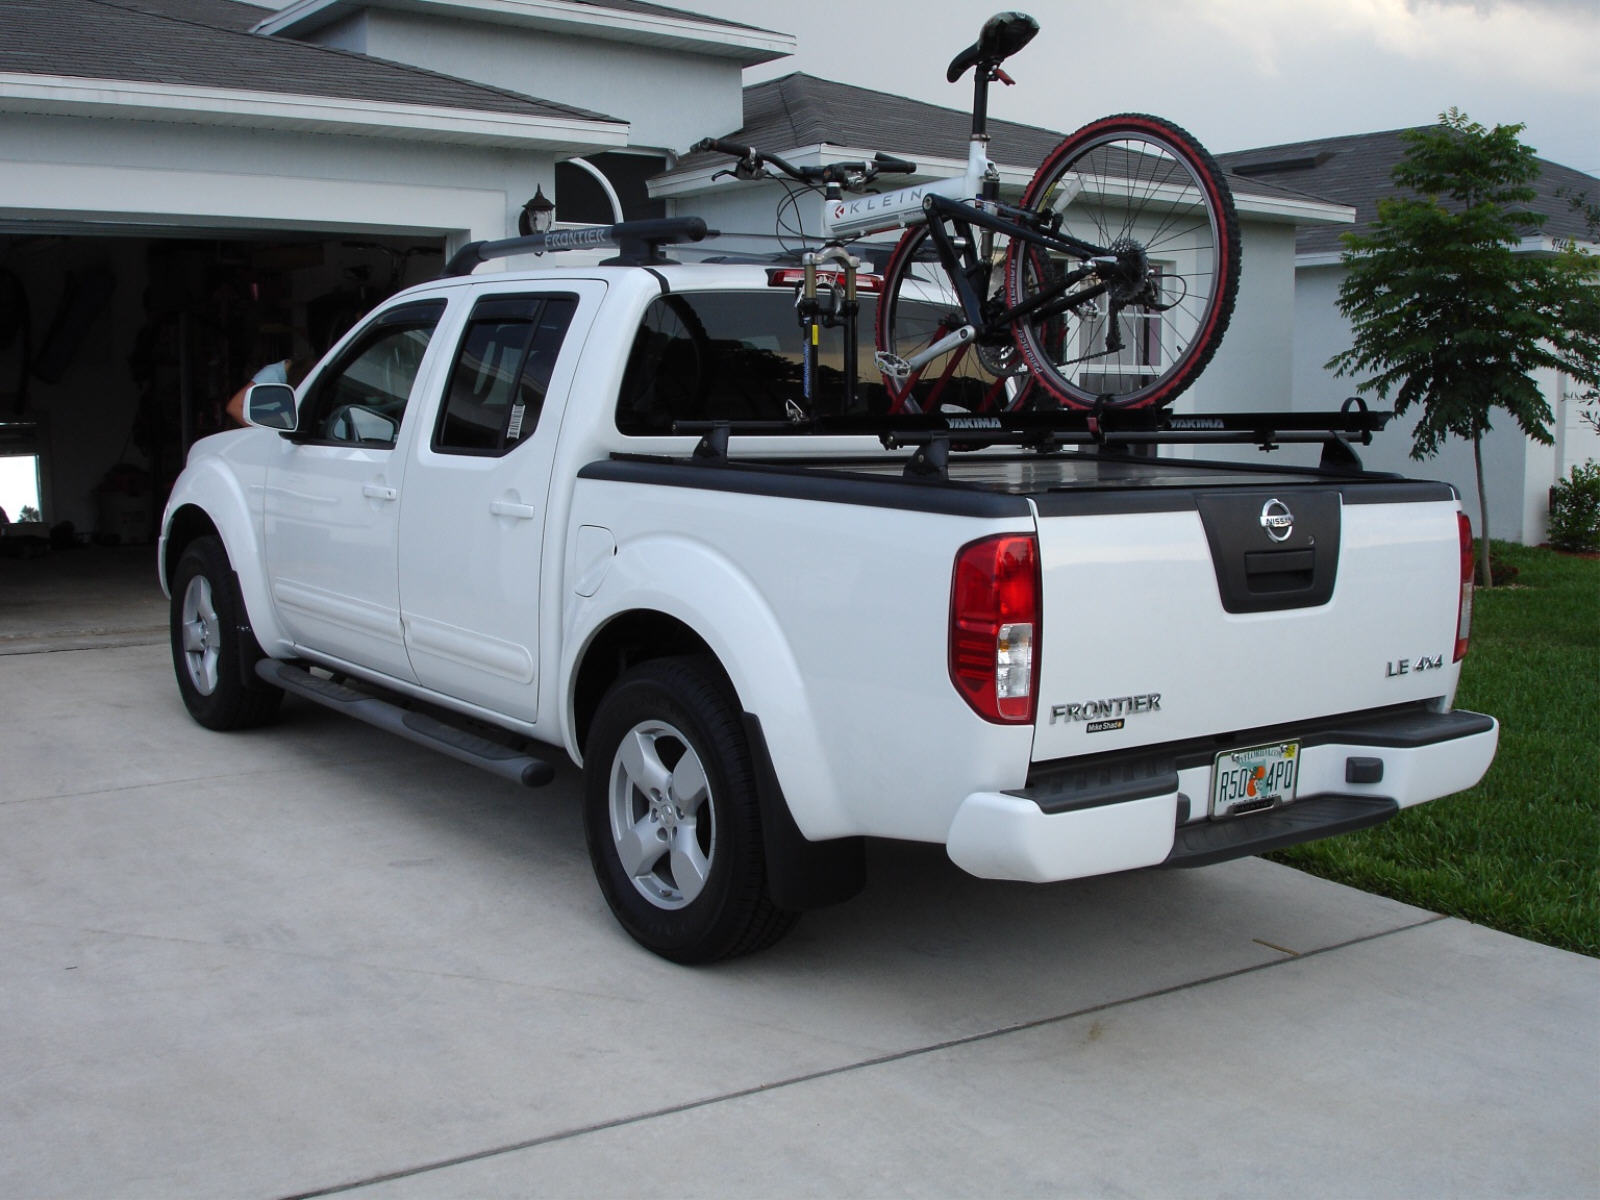 Bike Racks For Trucks D Rollbak Bedcover Bike Rack